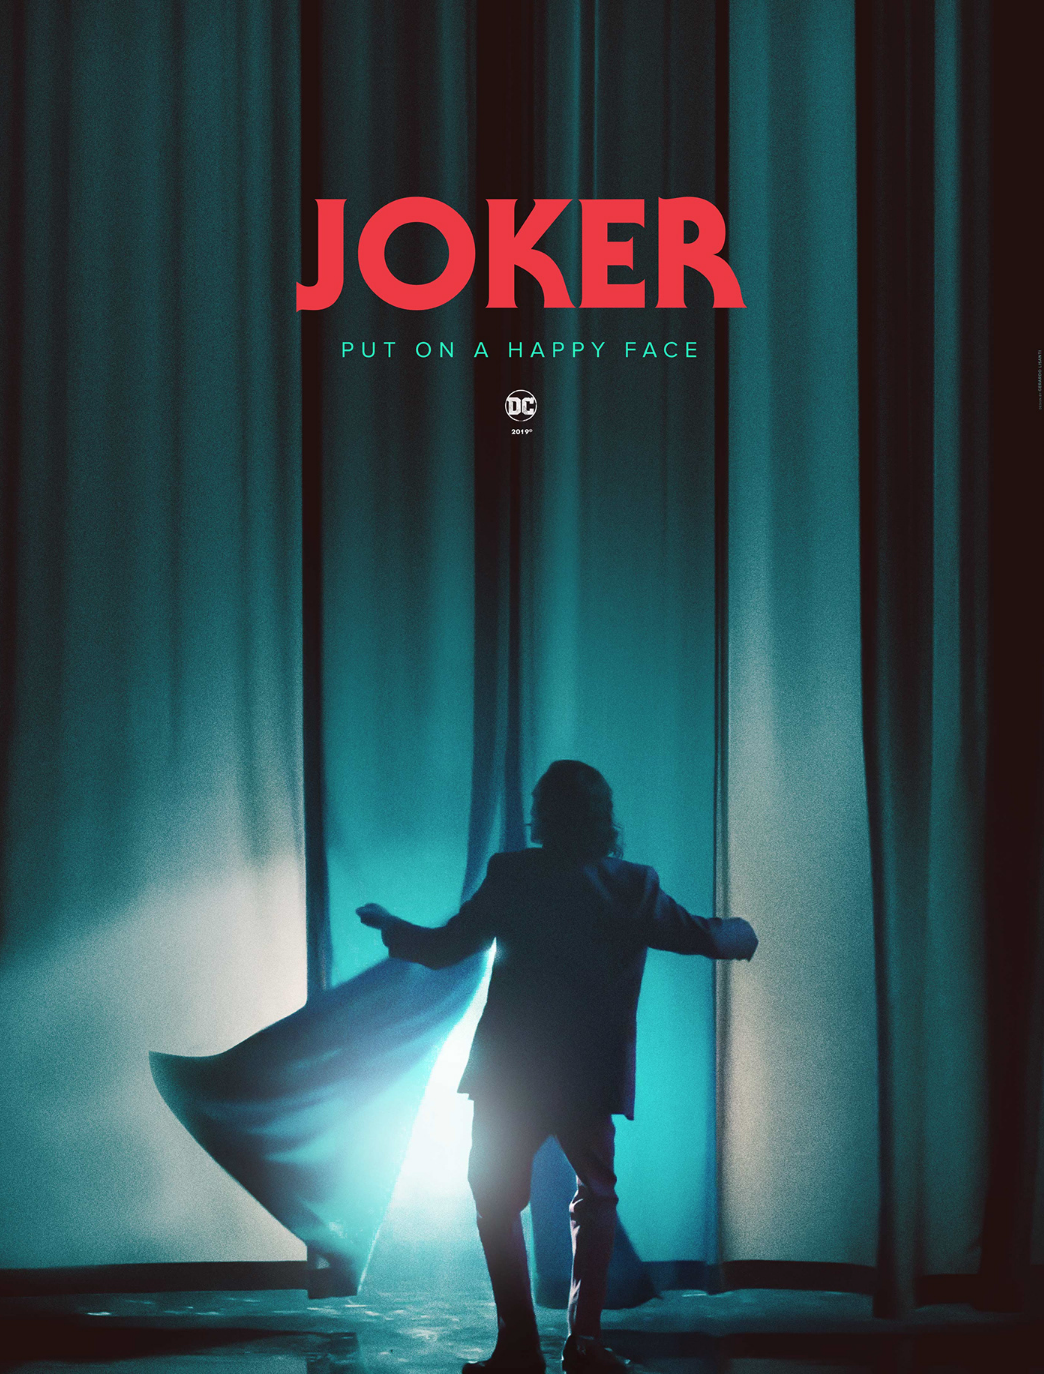 Joker, starring Joaquin Phoenix, has an 8.8/10 on IMDb and a 69% on Rotten Tomatoes.